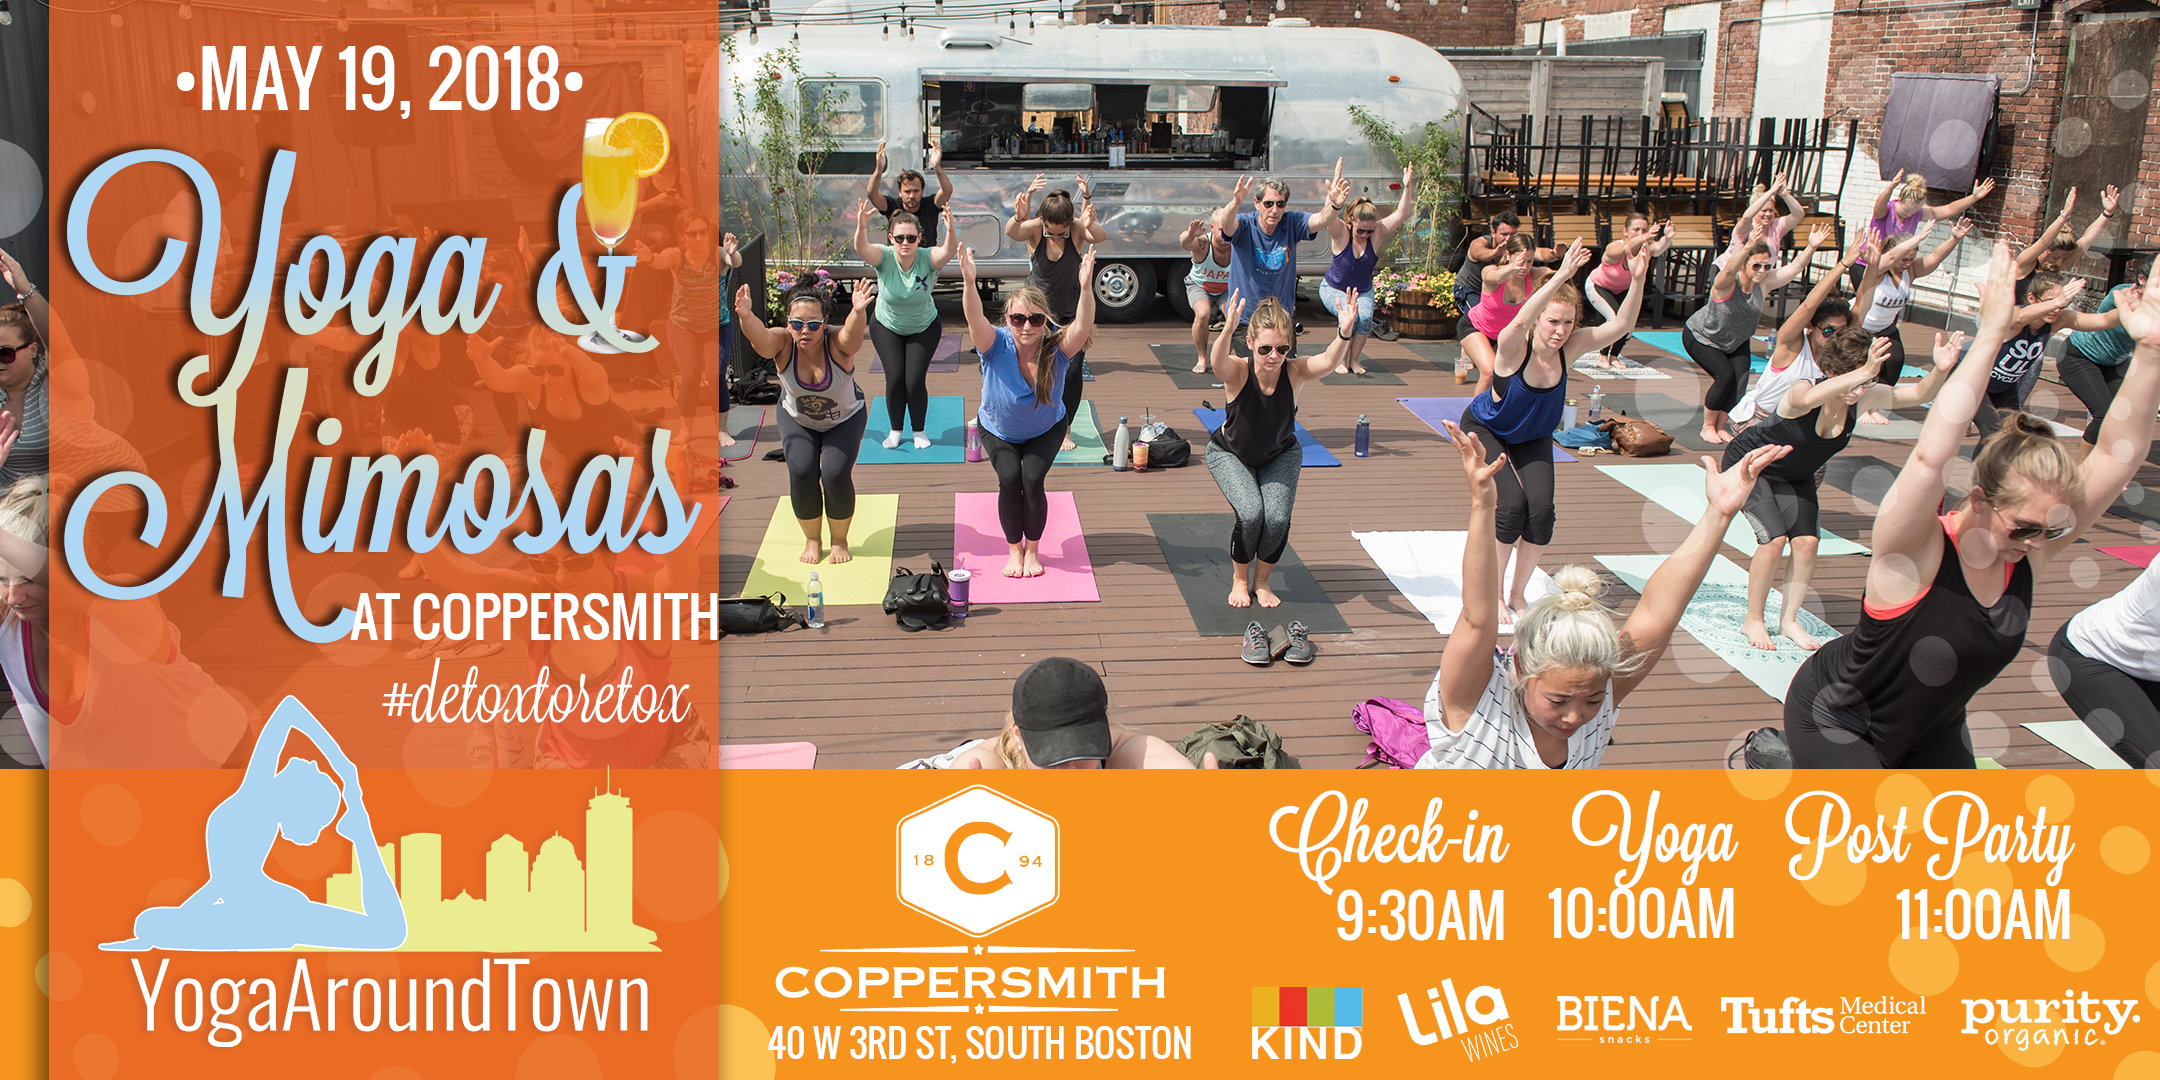 Start your Saturday with Yoga & Mimosas at Coppersmith in Southie! Leah Frasca will lead you through a fun all level flow that will have you moving, breathing and working up a sweat for 60-minutes before we #detoxtoretox with mimosas afterward!  All tickets include a Lila Wine Sparkling Mimosa and goodies from our sponsors!   Check out our full Yoga & Mimosas at Coppersmith series and be sure to register for the correct date!   Check-in: 9:30 -10:00 am    Class: 10-11:00am    Post-Party: Directly following class includes a Lila Wine & Purity Organic Mimosa